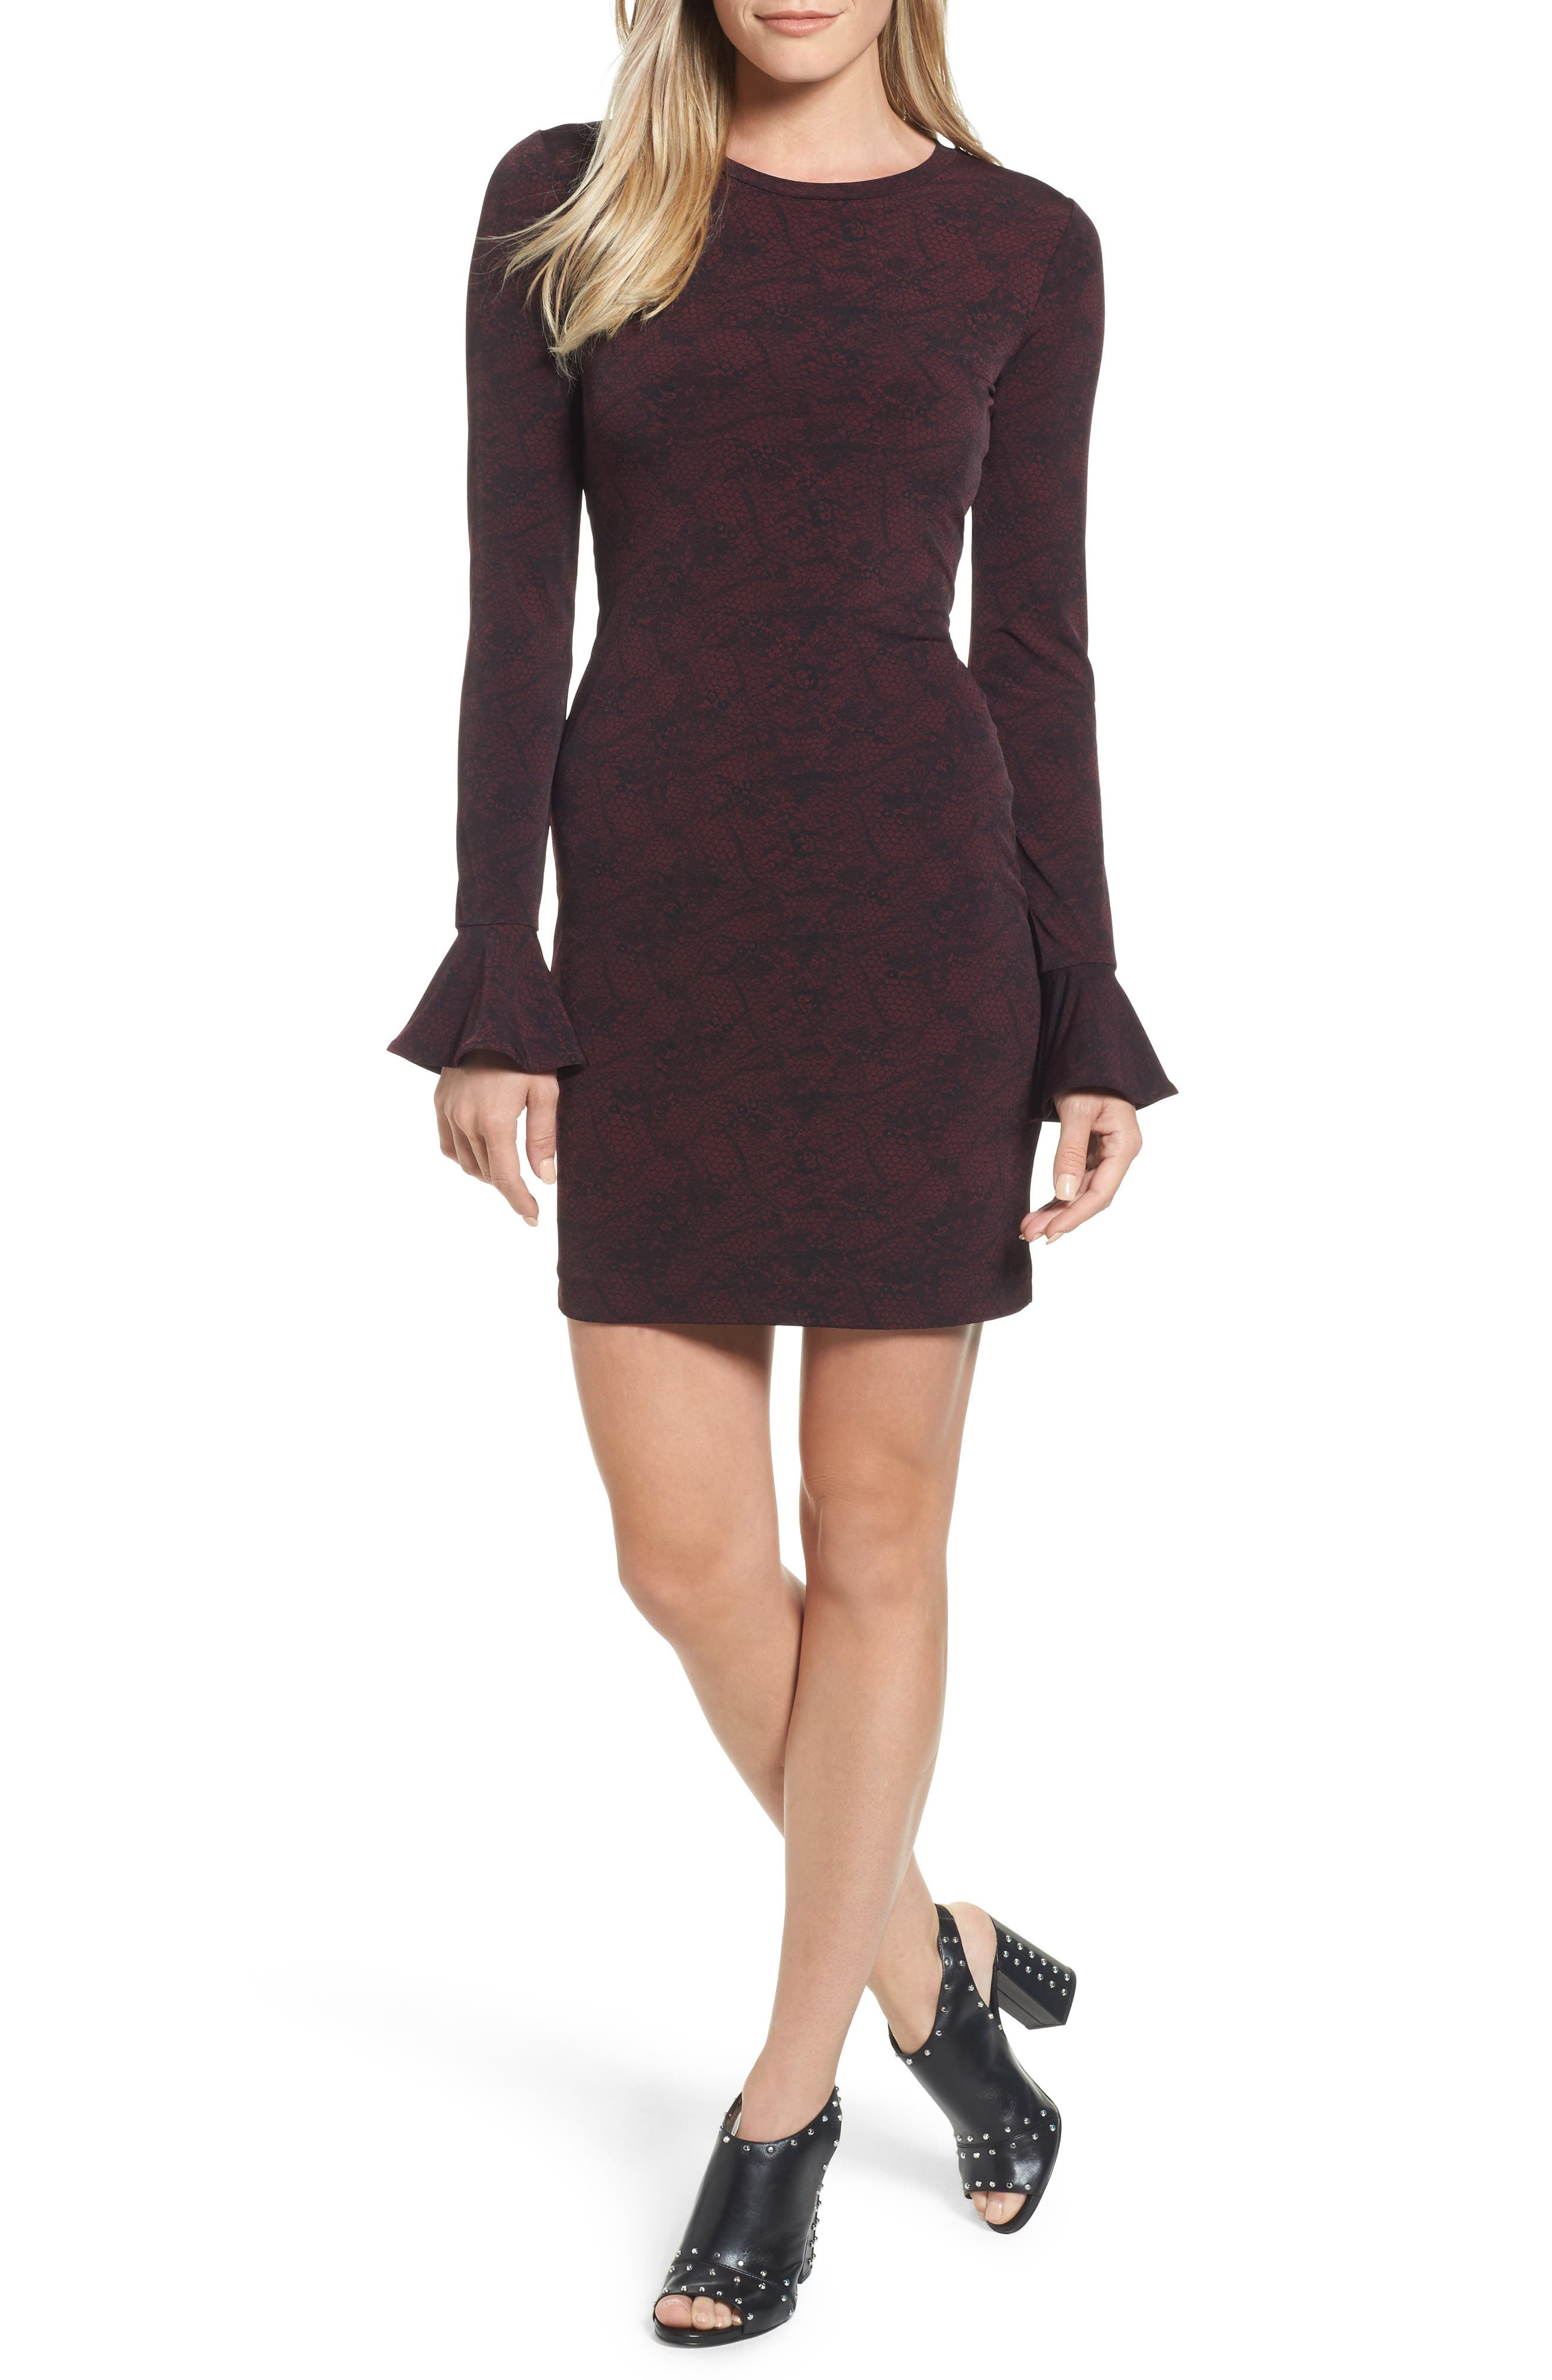 Floral Mesh Dress,                             Main thumbnail 1, color,                             Merlot/Black